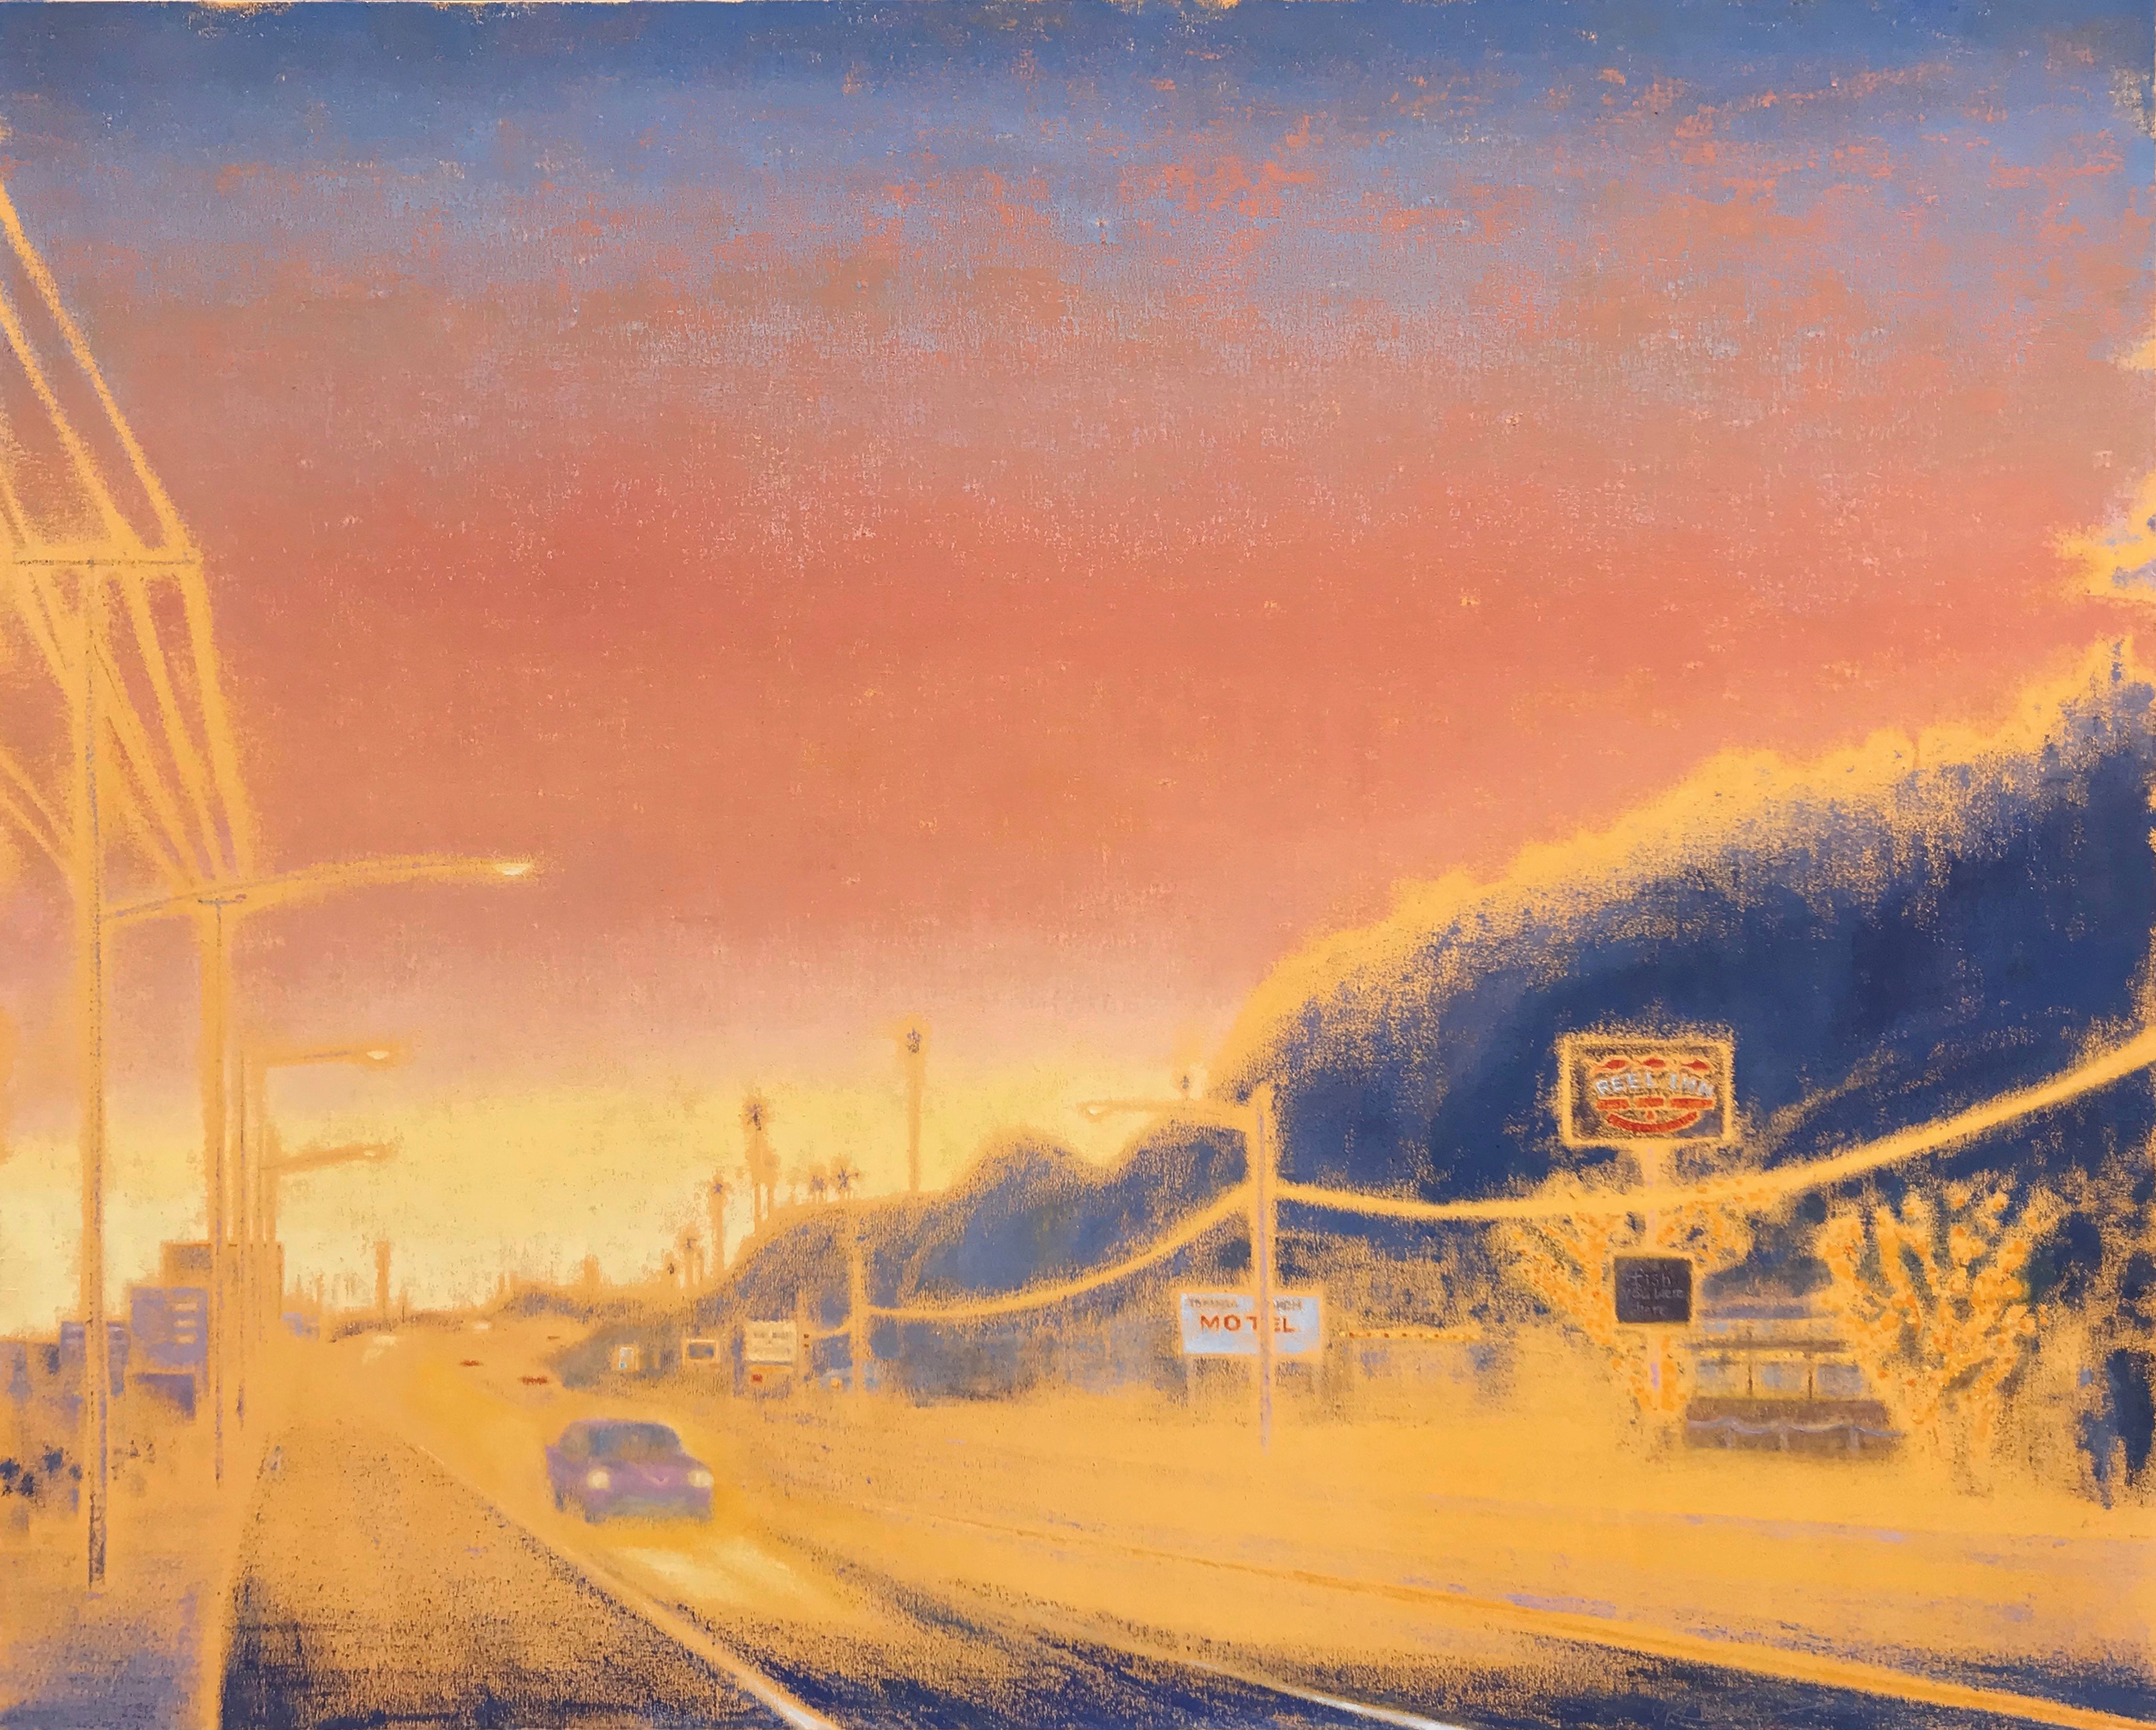 ©Gay-Summer-Rick_Wish-You-Were-Here_Oil-on-Canvas_48x60in_Nonpro